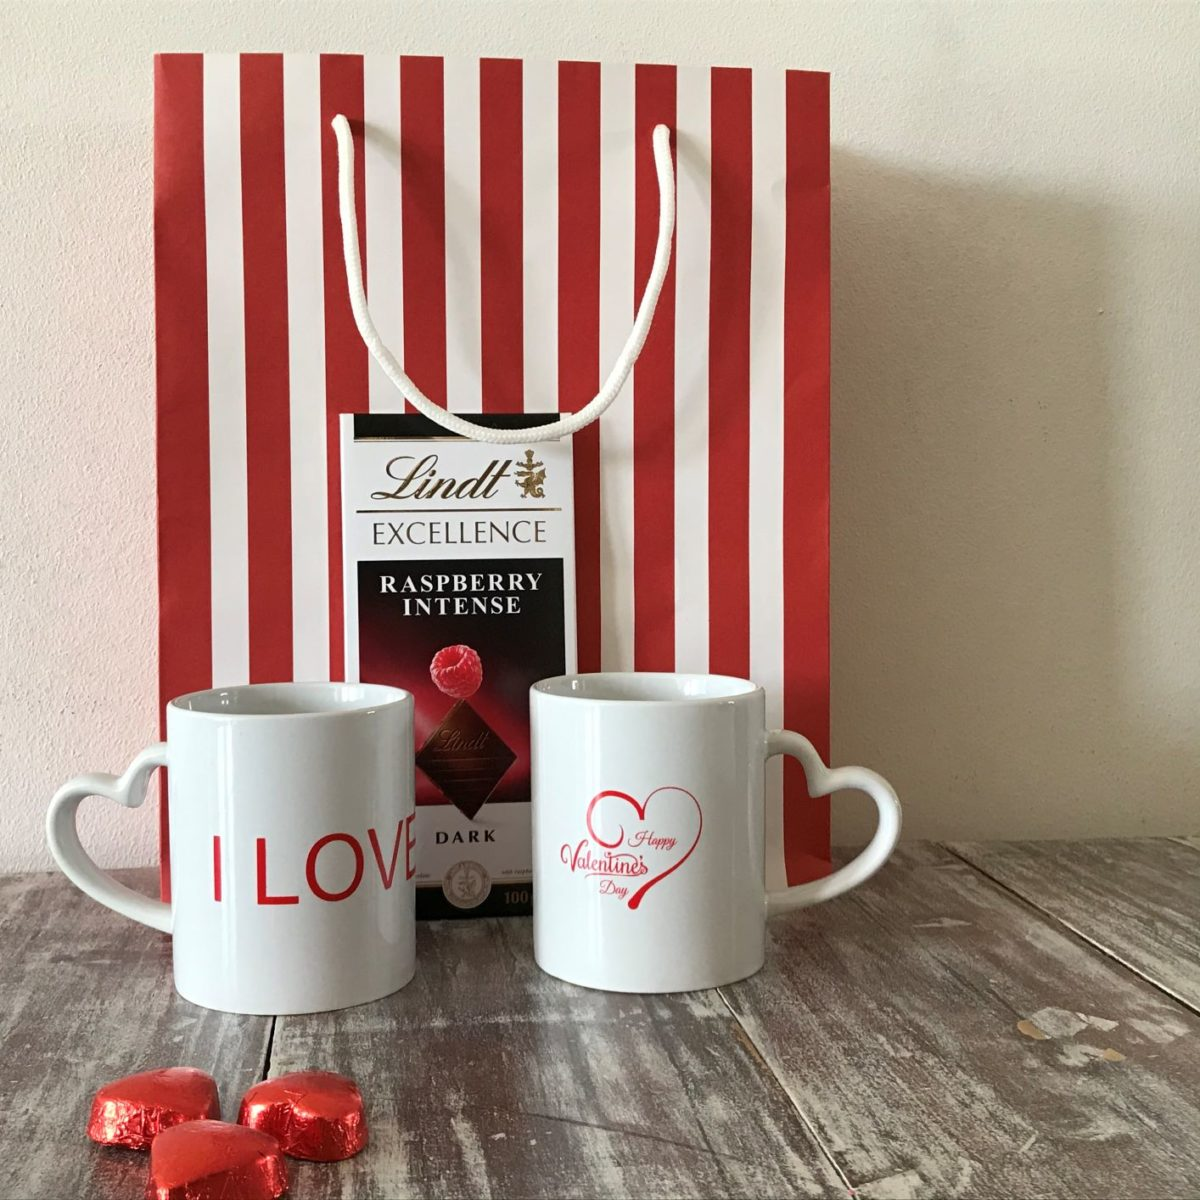 Valentine's Day mugs with a Lindt chocolate slab